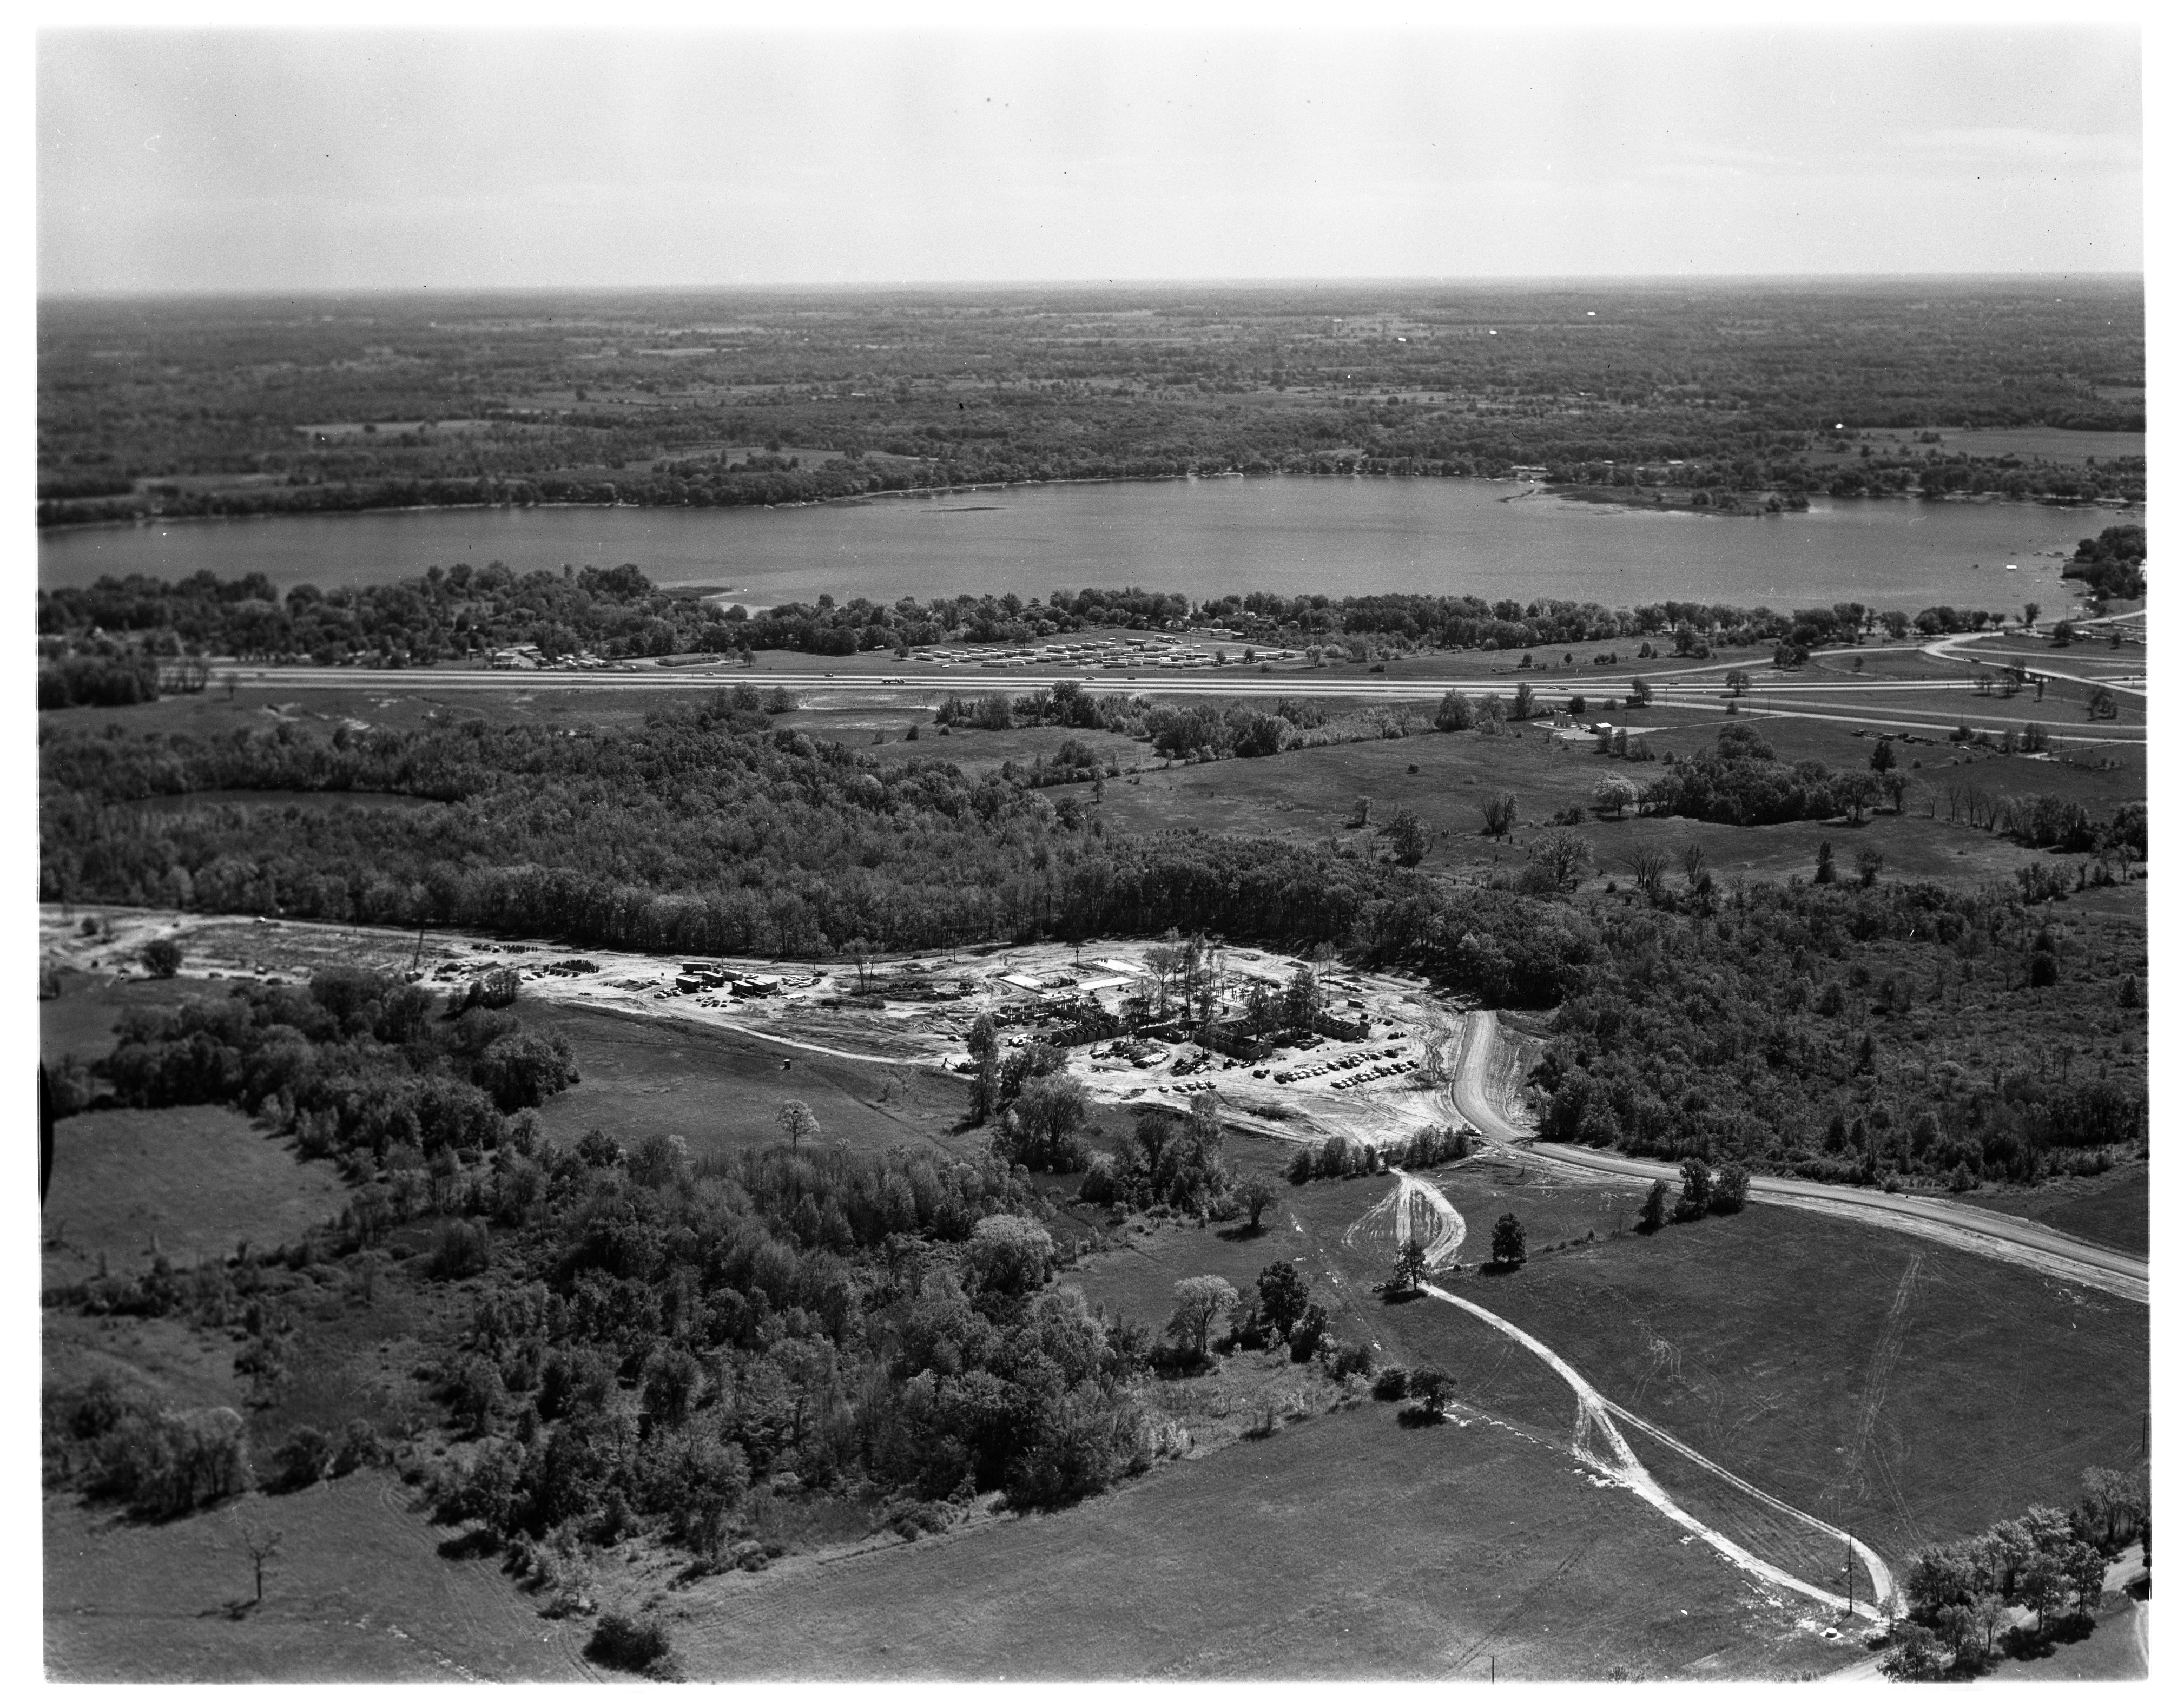 Aerial Photograph of Willard J. Maxey Boys' Training School, September 1963 image